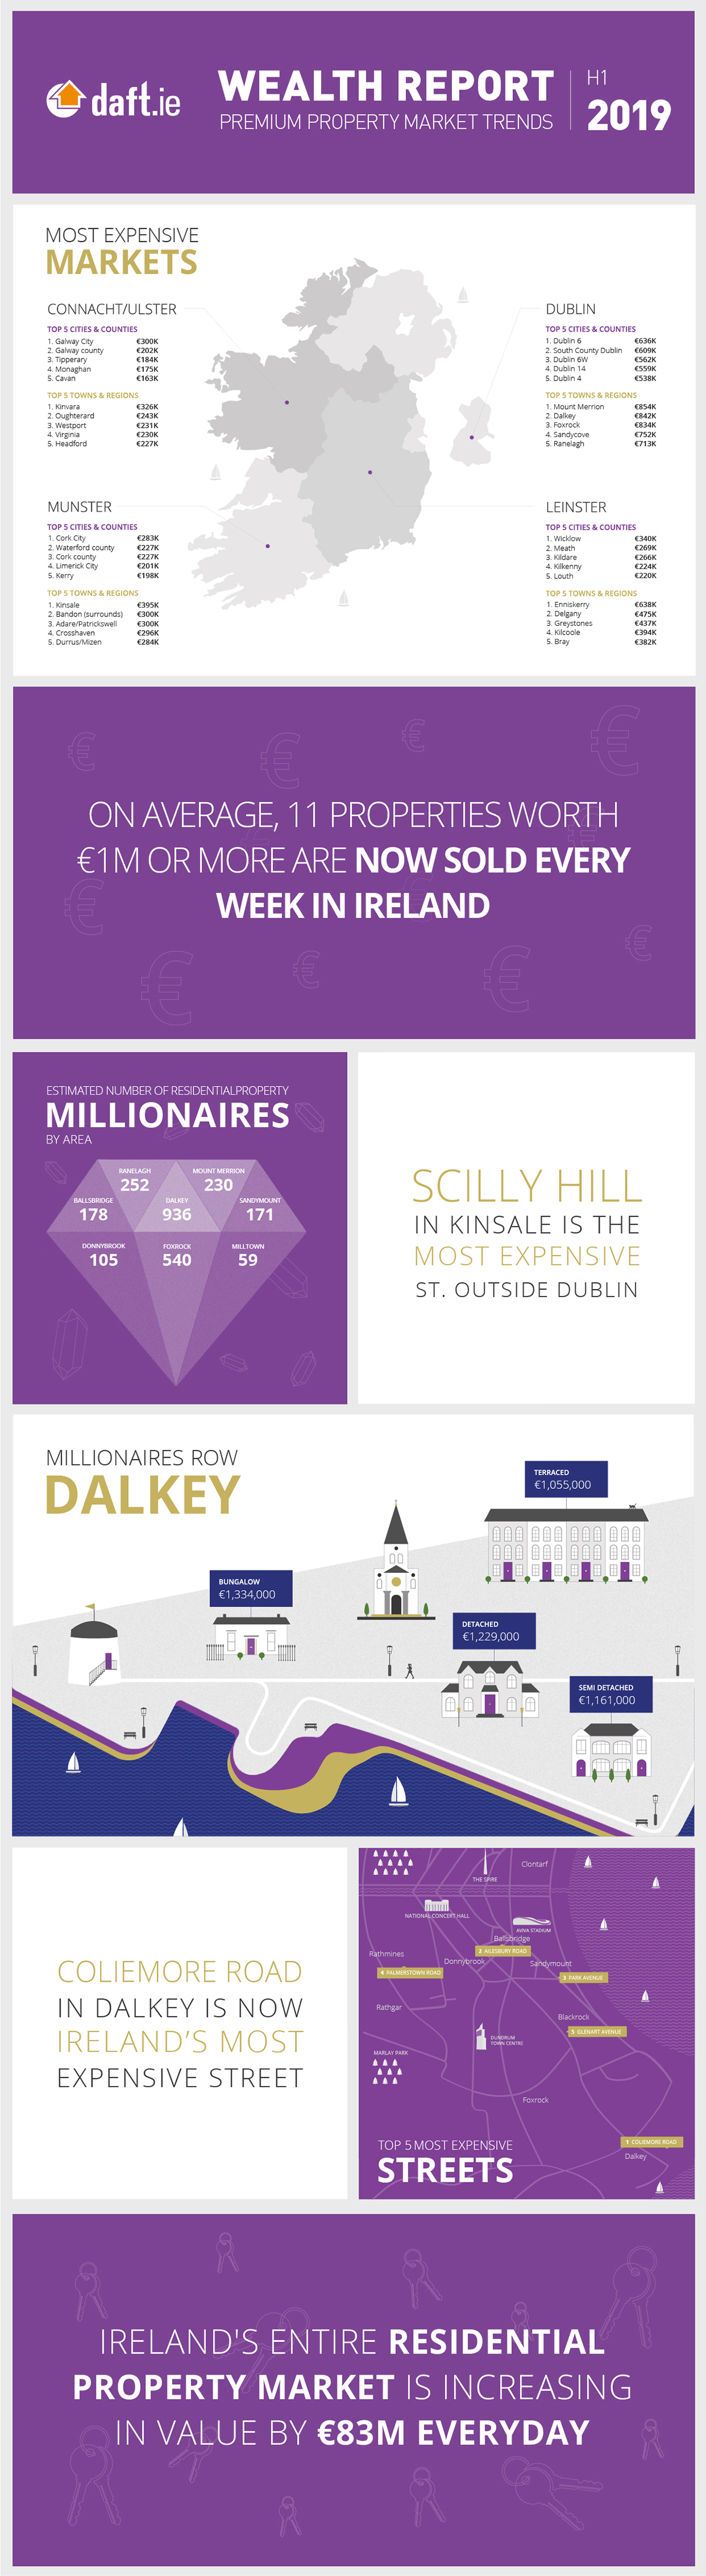 Daft.ie Wealth Report: H1 2019 Infographic